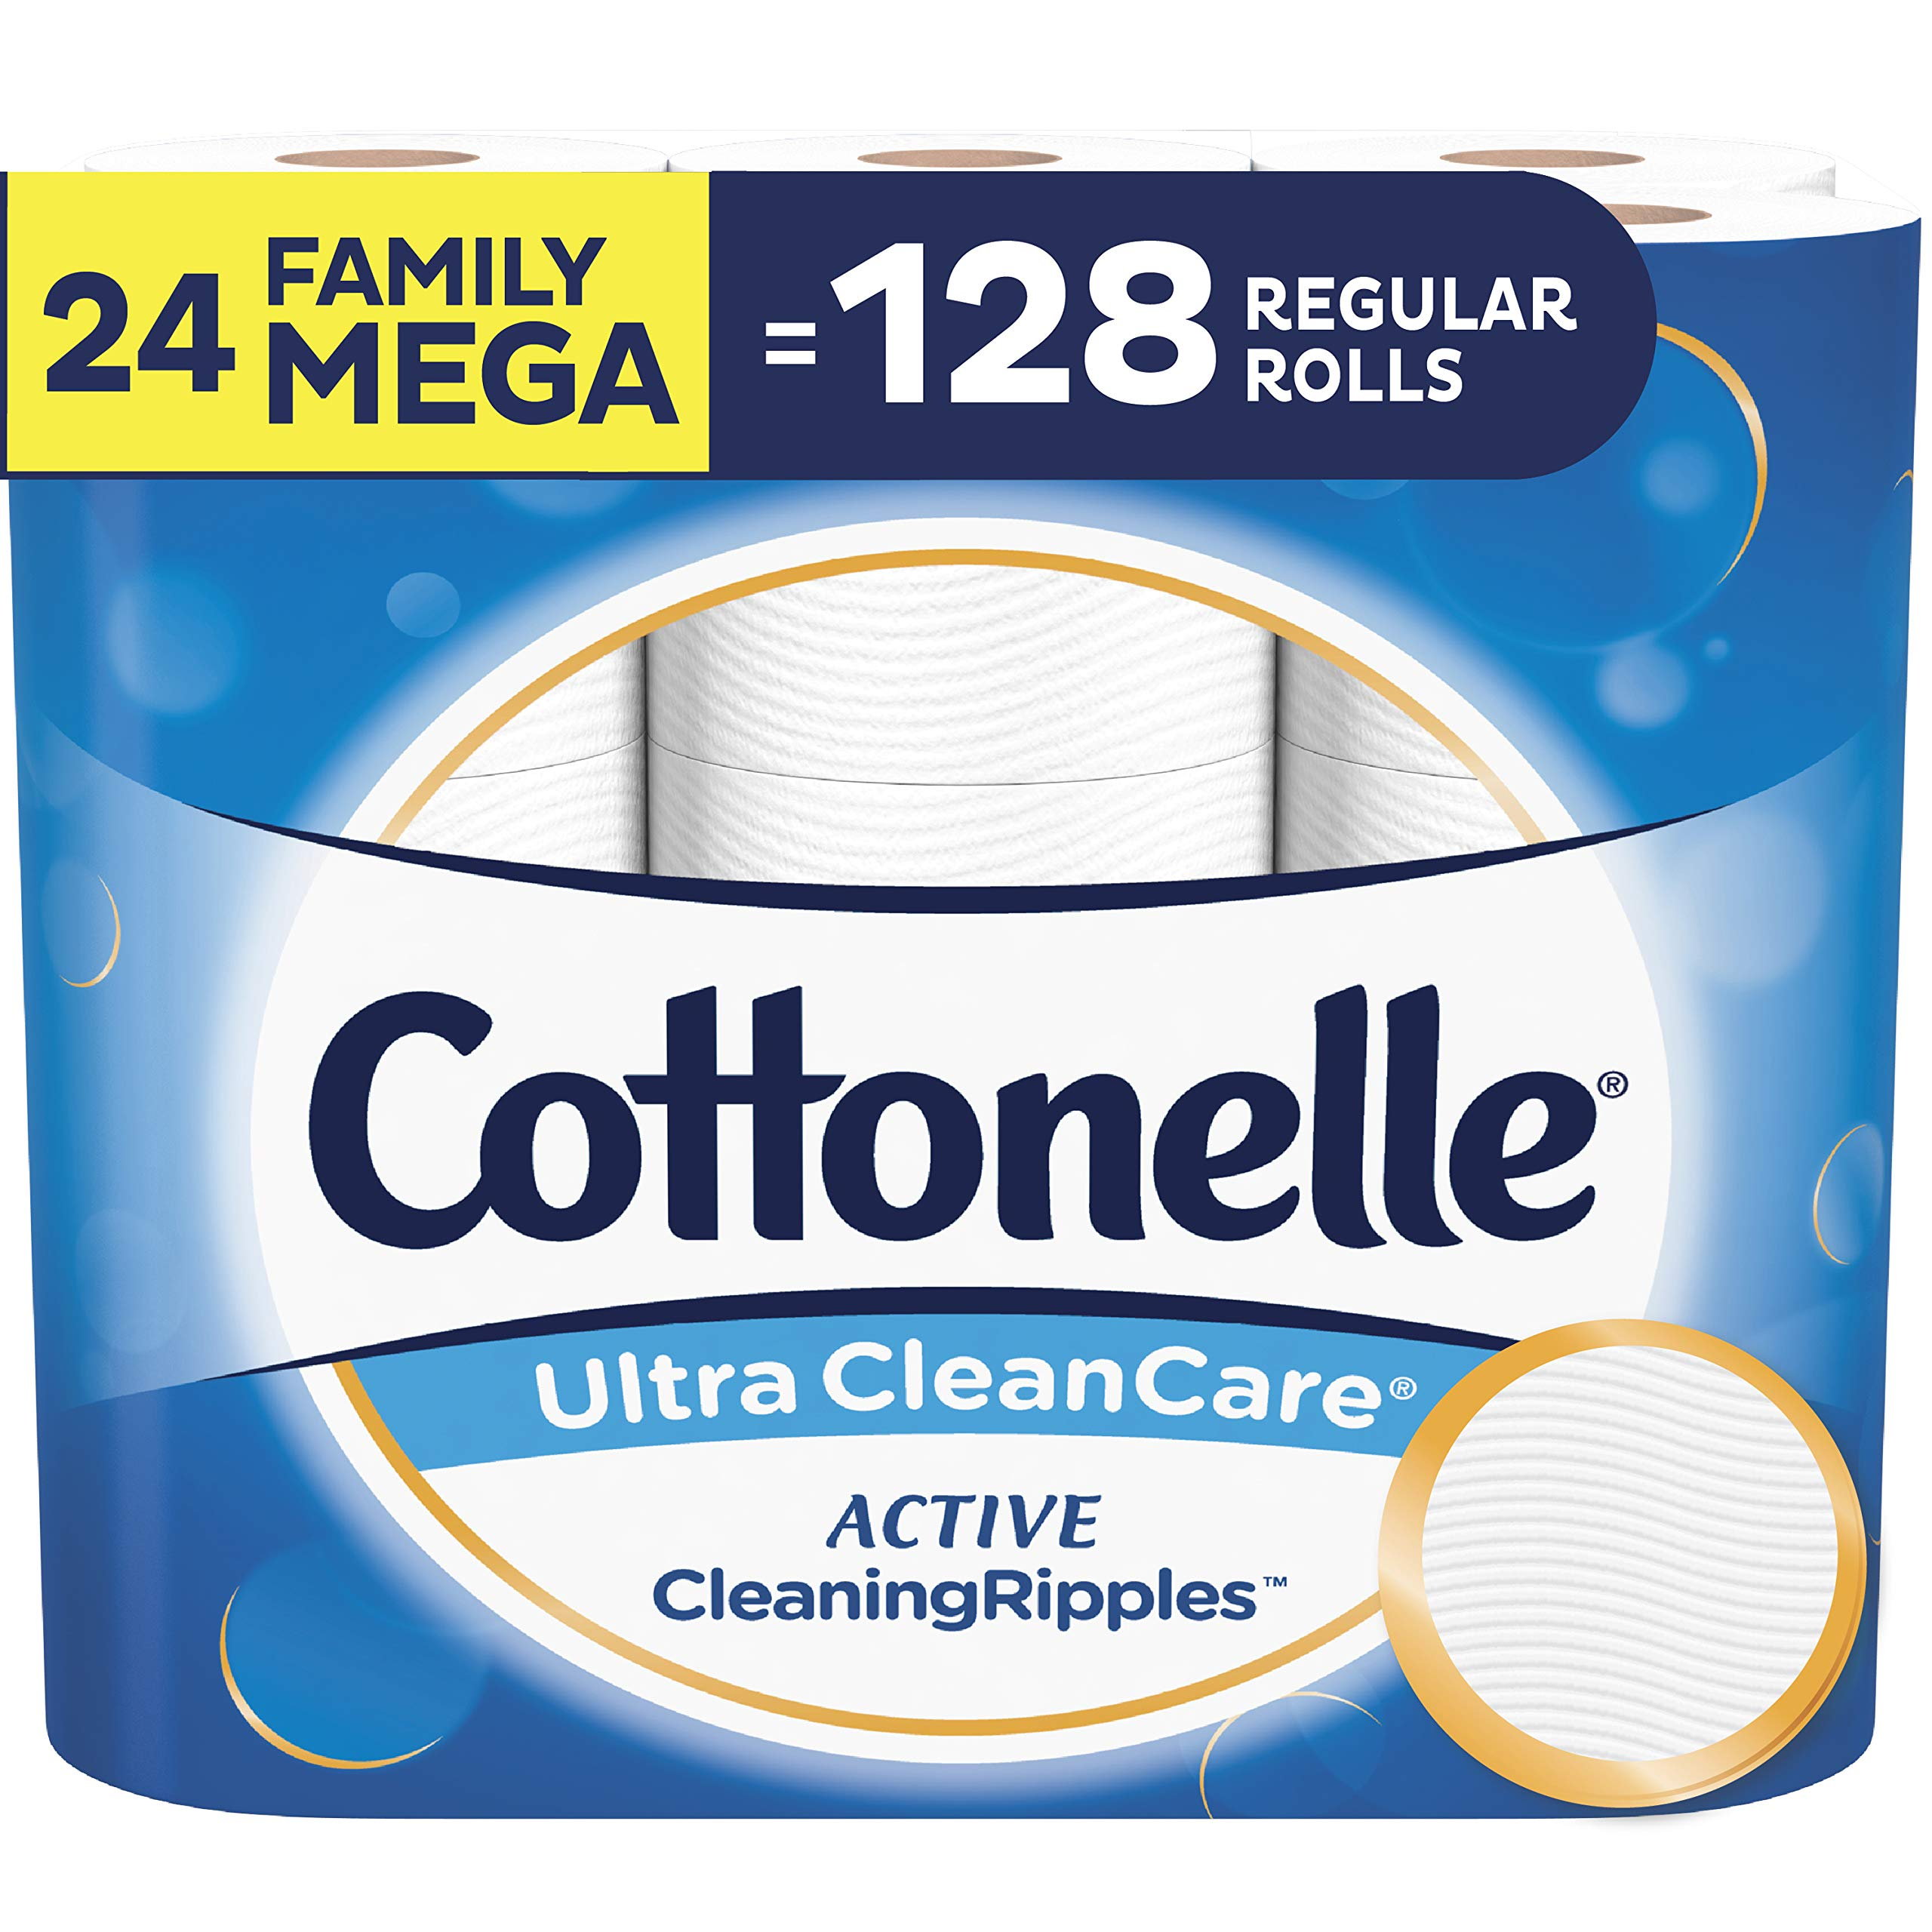 Cottonelle Ultra CleanCare Toilet Paper with Active CleaningRipples, Strong Biodegradable Bath Tissue, Septic-Safe, 24 Family Mega Rolls by Cottonelle